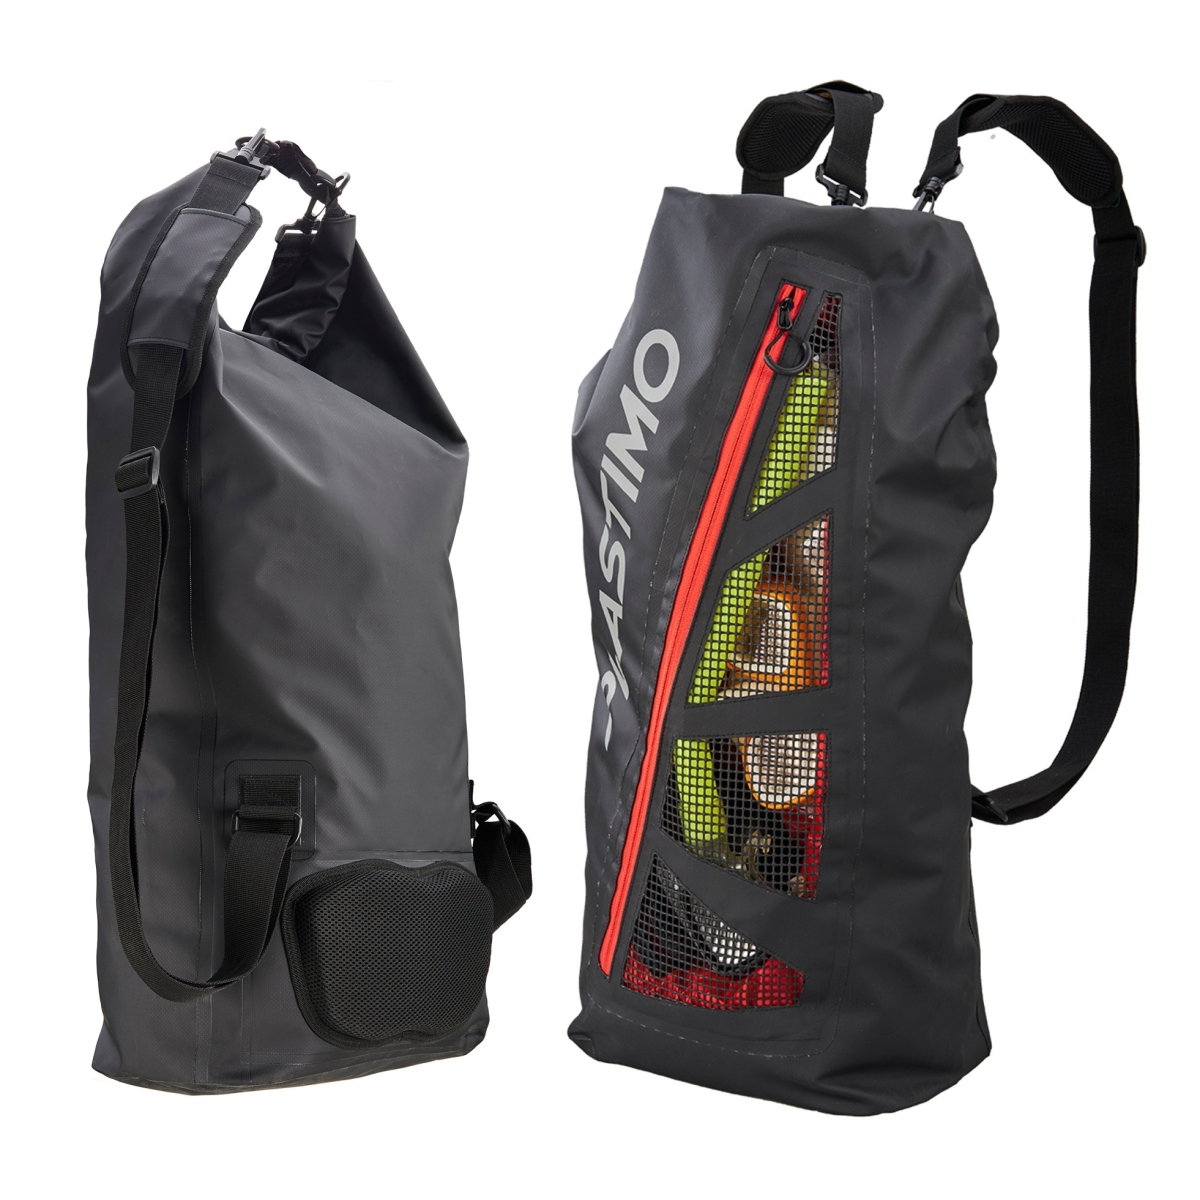 Wet and dry bag